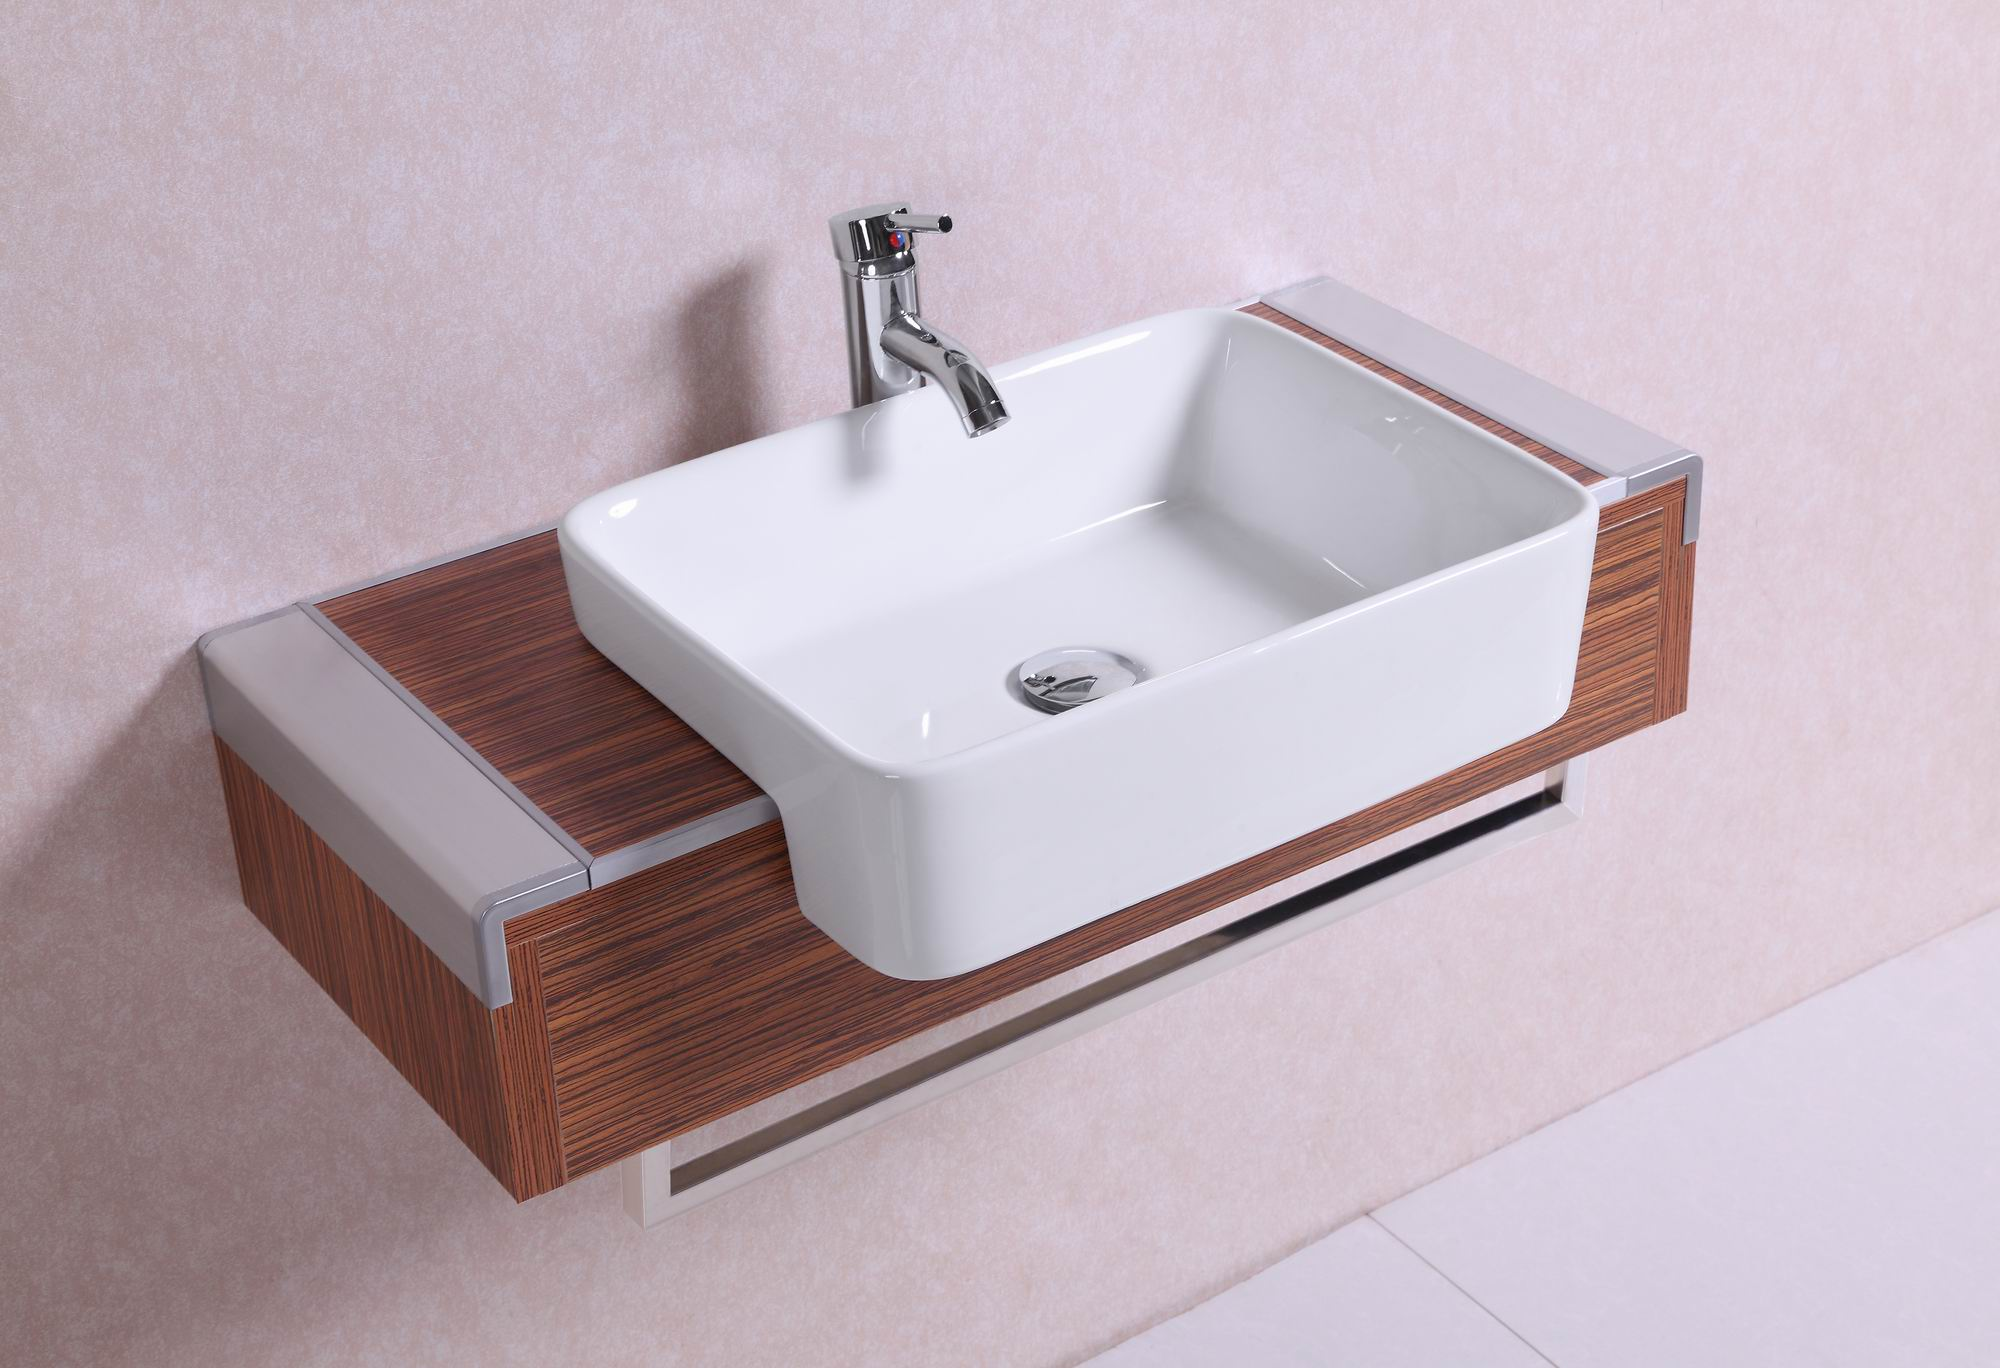 32-inch Belvedere Modern Wall Mounted Veneer Bathroom Vanity with Vessel Sink